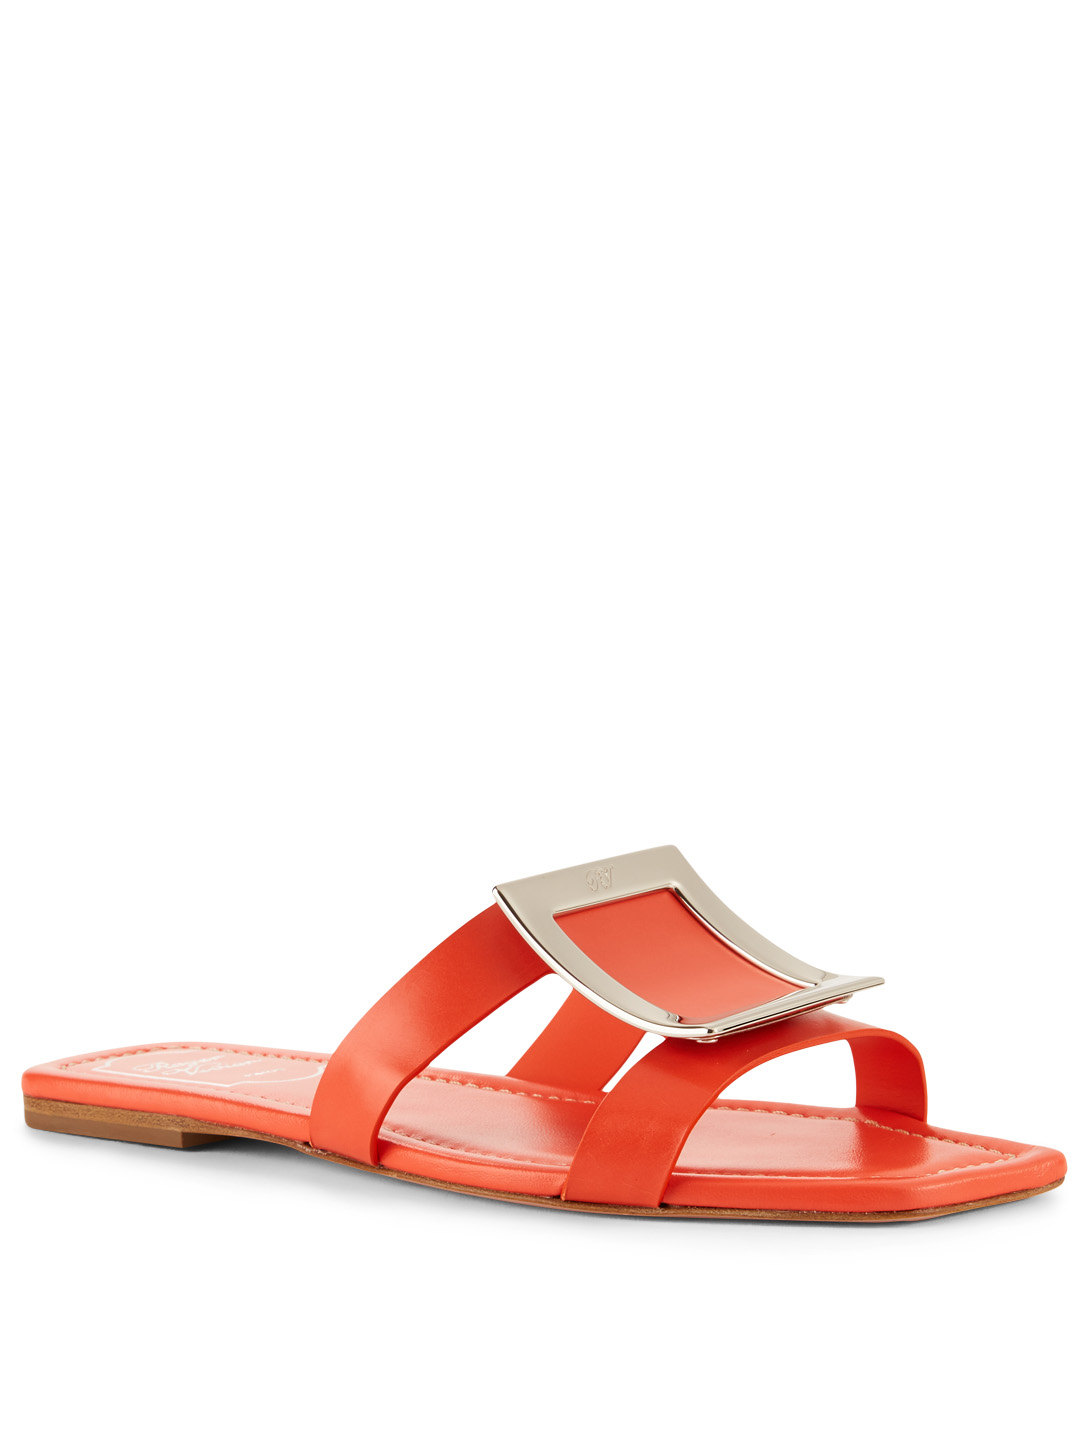 ROGER VIVIER Leather Slide Sandals With Buckle Womens Orange